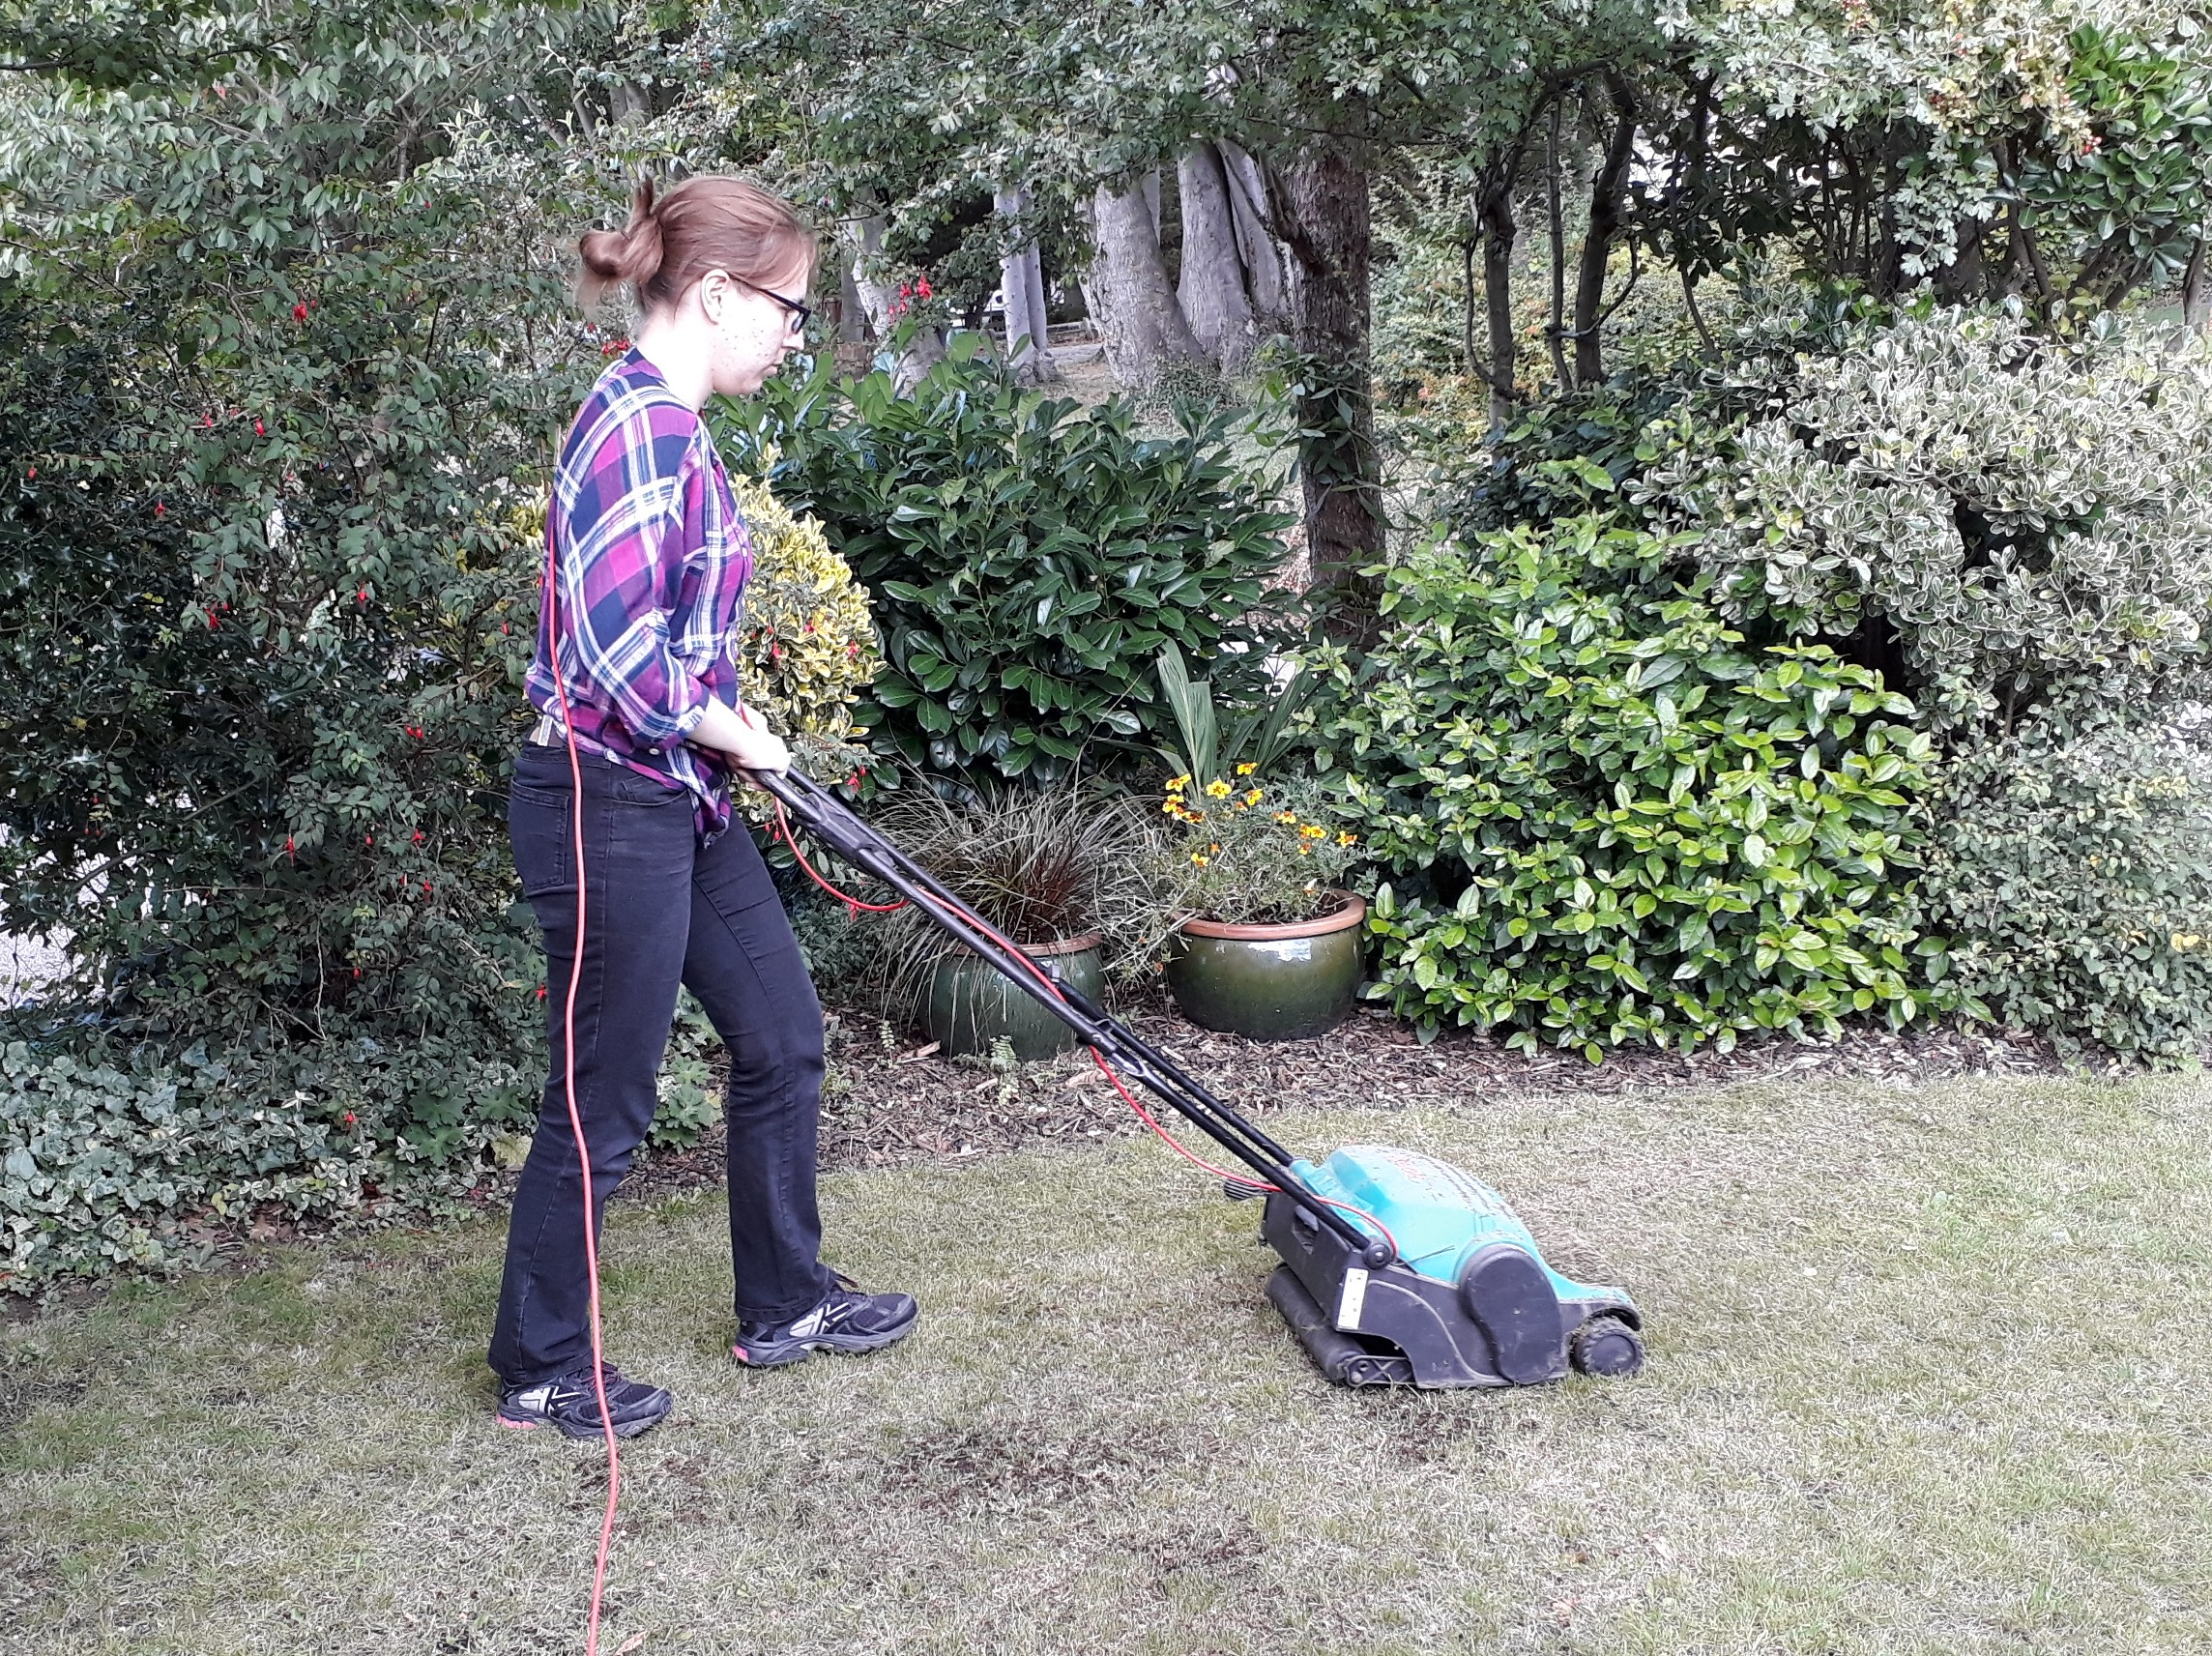 The electric lawn rake can be used with or without its collecting box